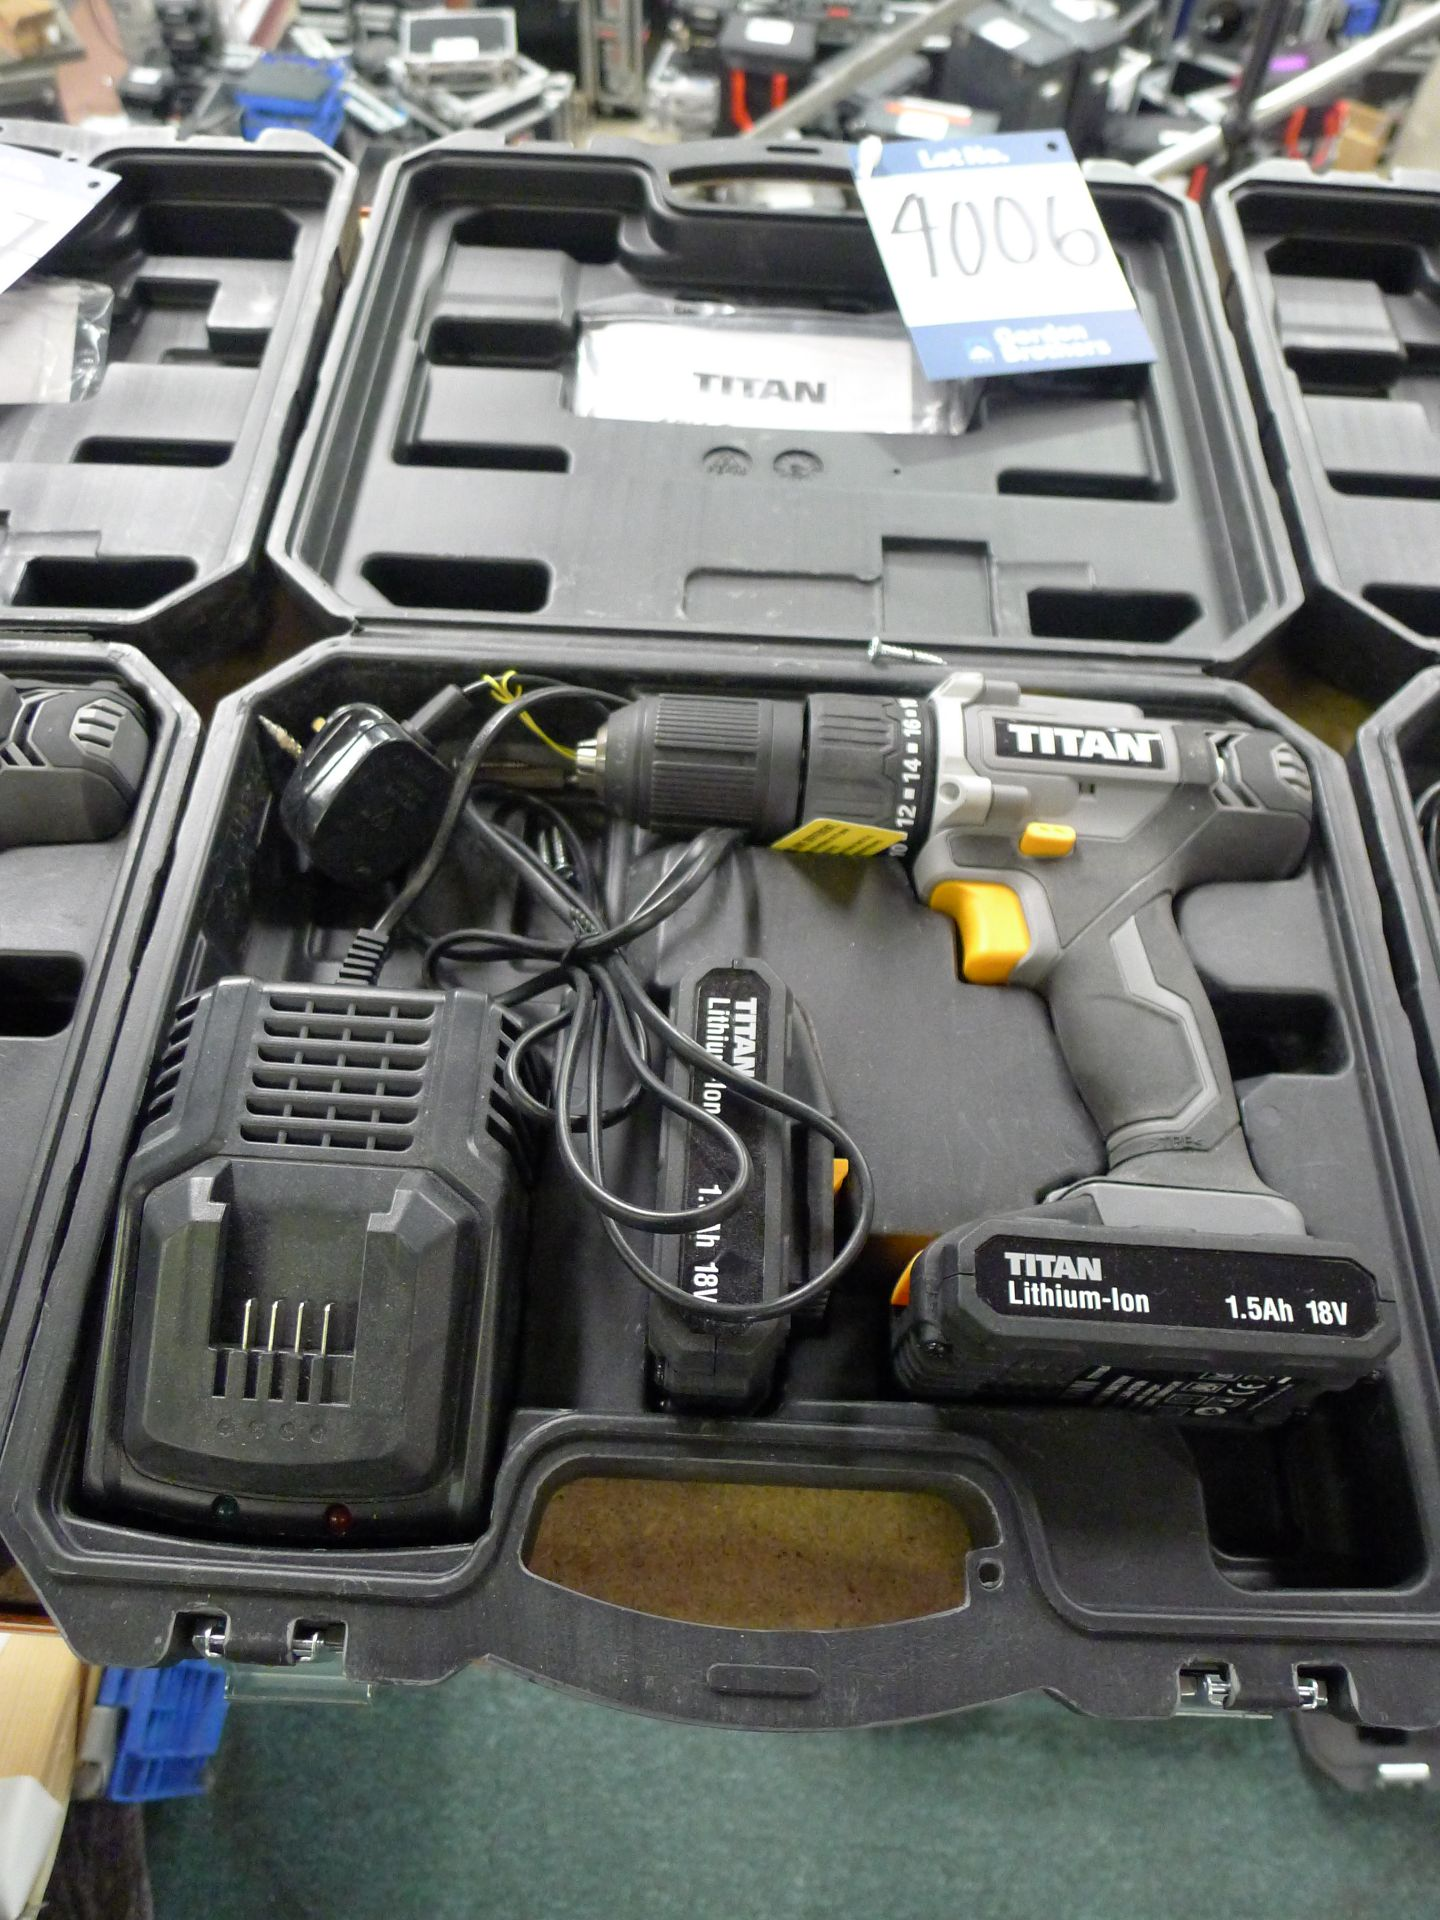 Lot 4006 - Titan 18 V Drill Driver with Charger and Spare Bat